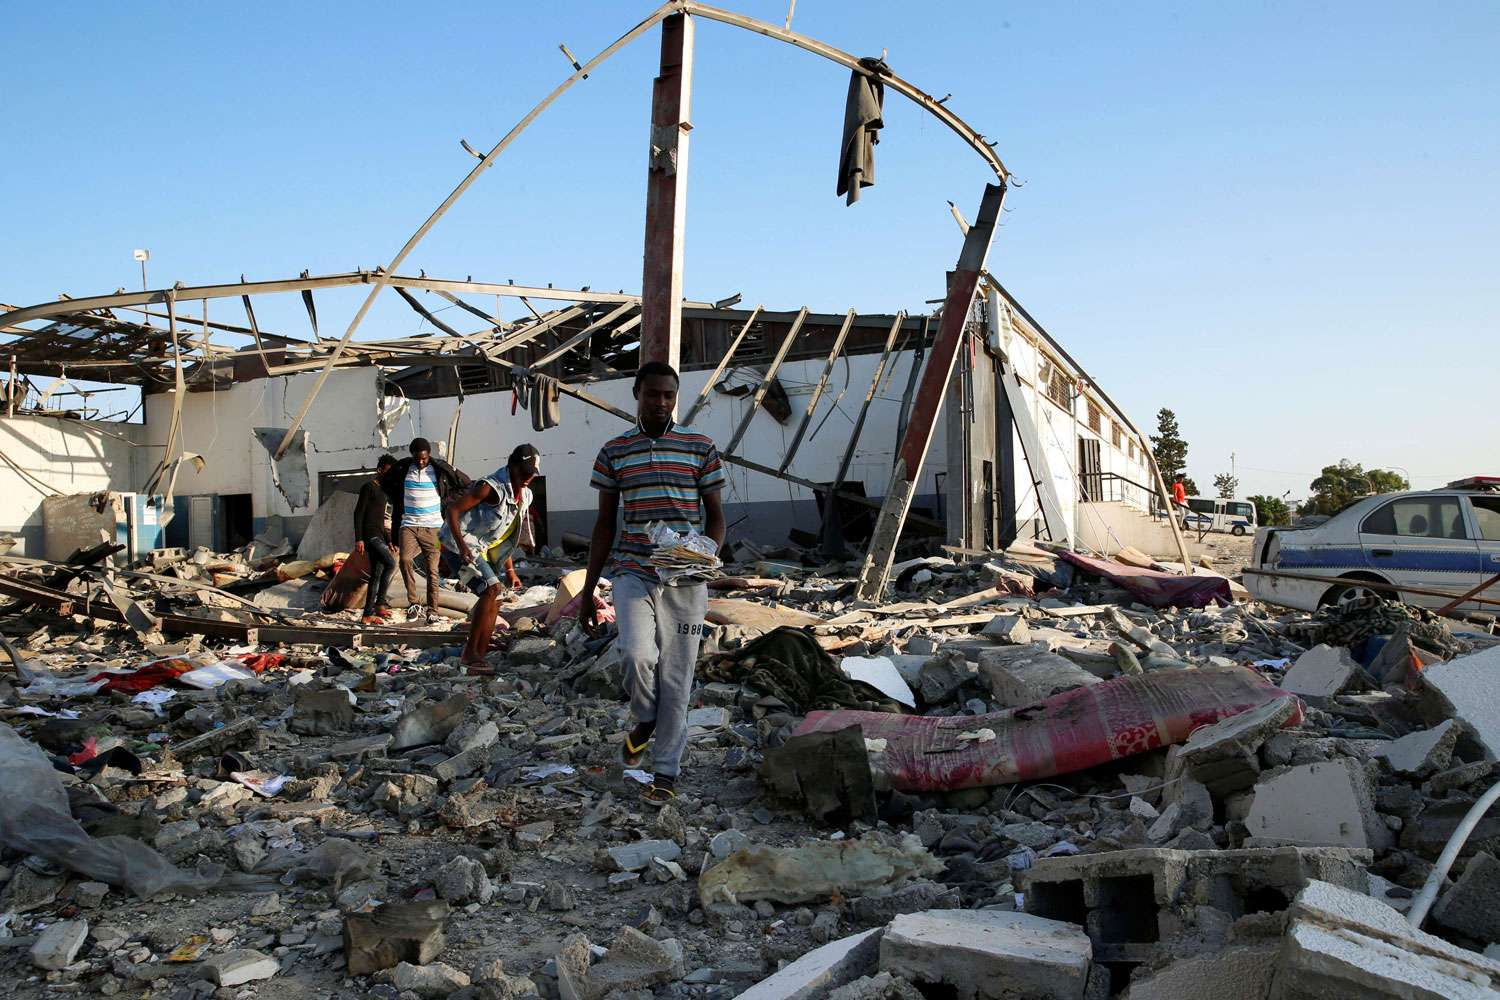 ICC should open an investigation into horrific attack on migrants center in Libya